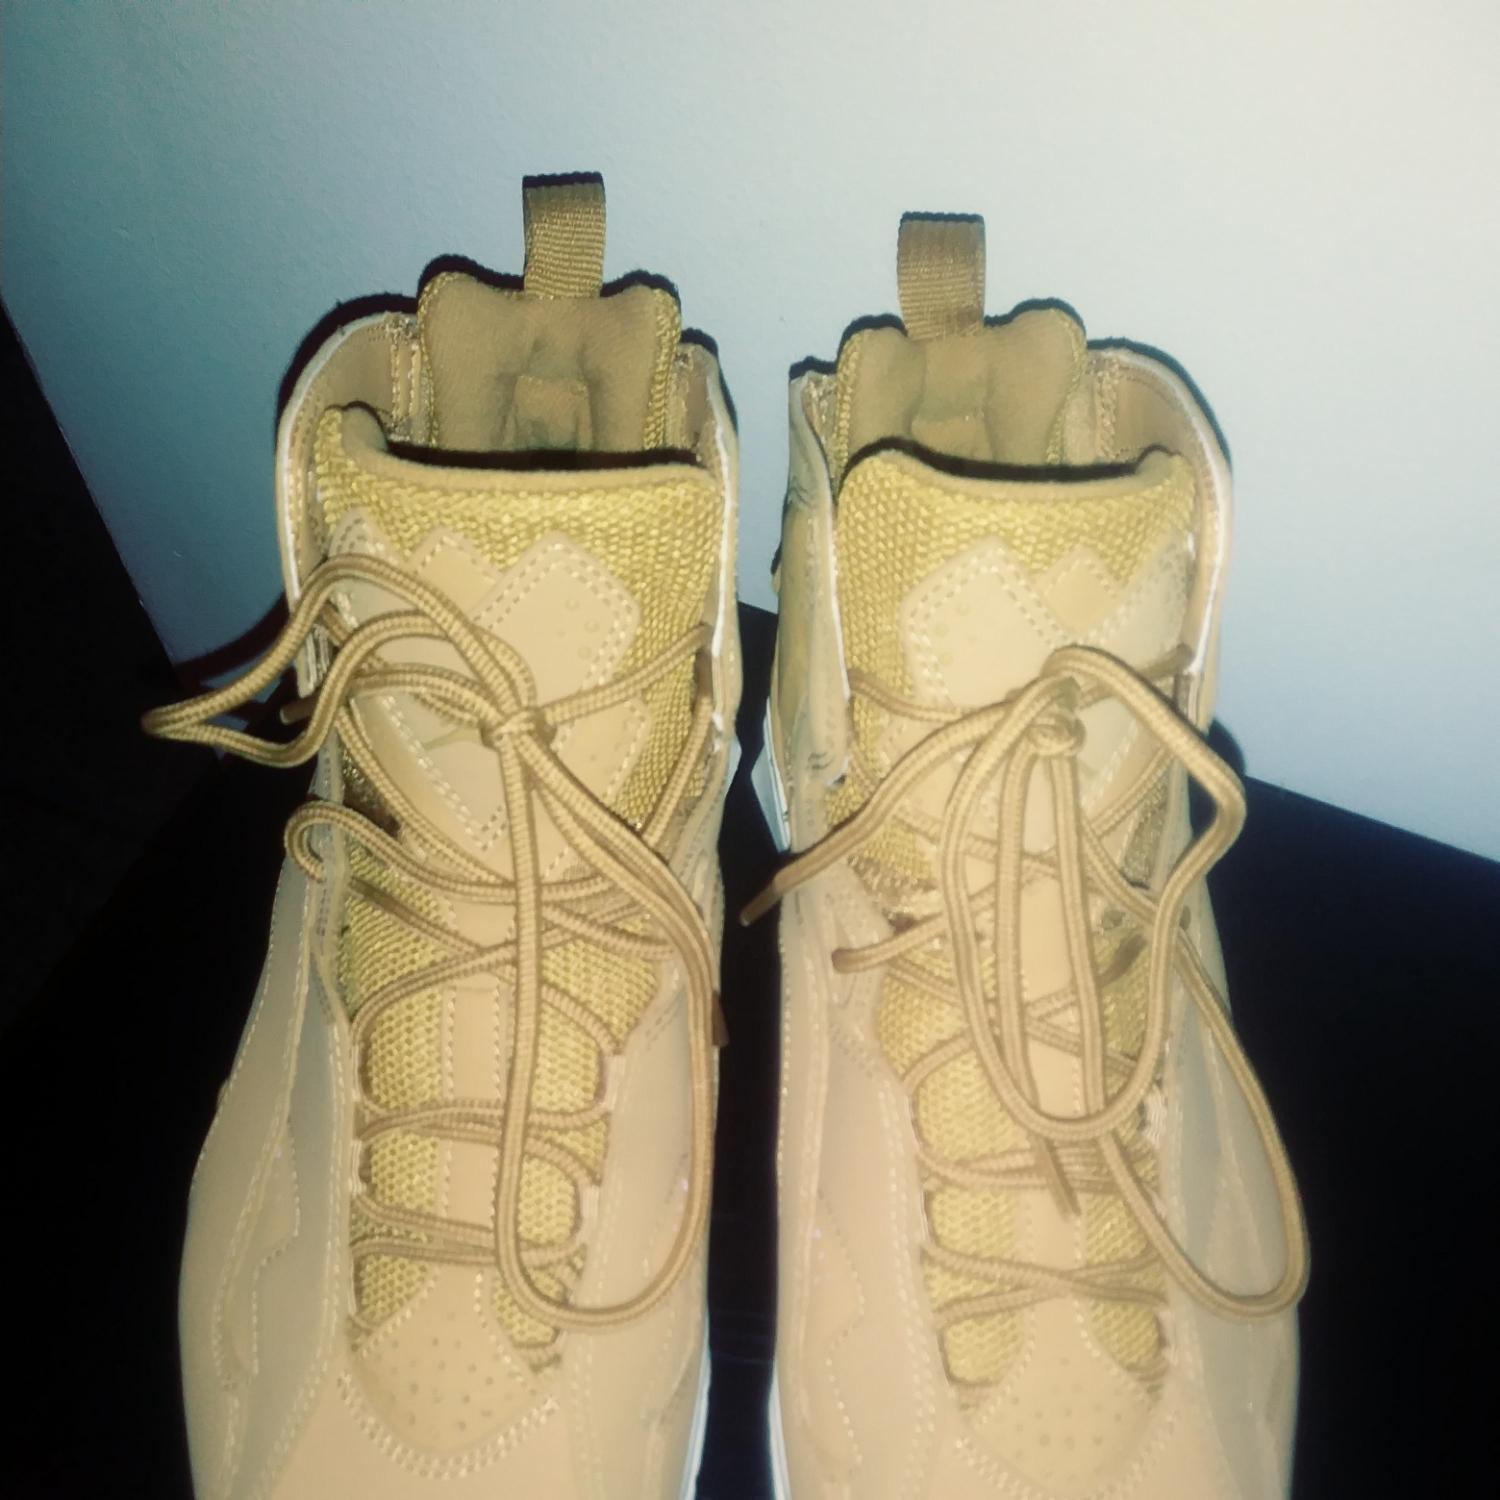 89affa476fe ... best price air jordan golden wheat true flight sneakers size us 9.5  regular m b tradesy 494a7